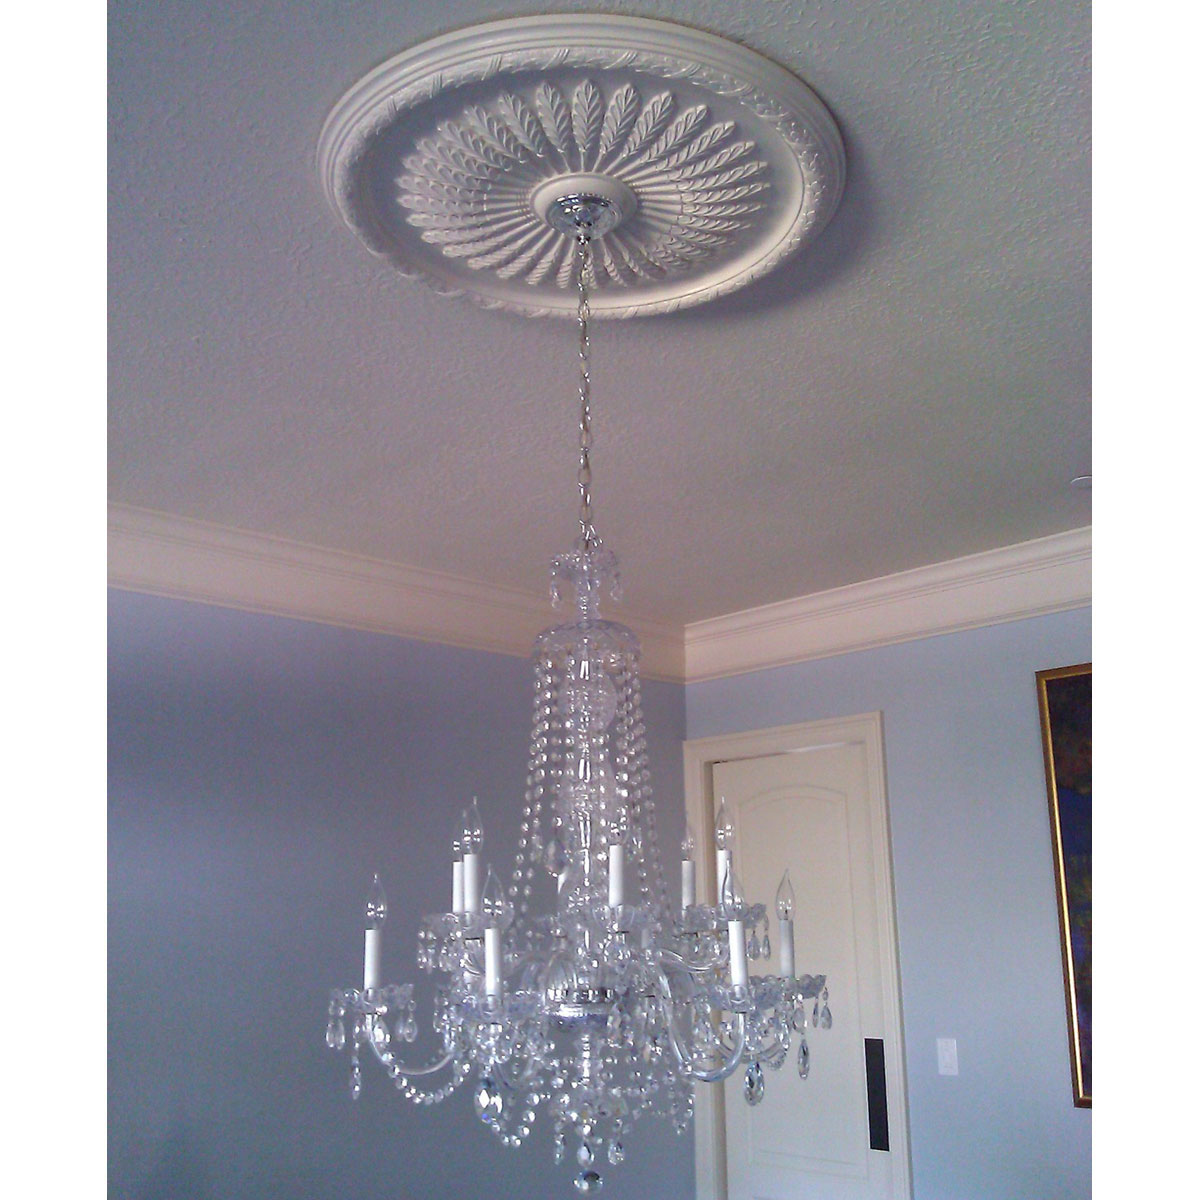 co medallion chandelier tulum smsender ceiling medallions with chandeliers ceilings for